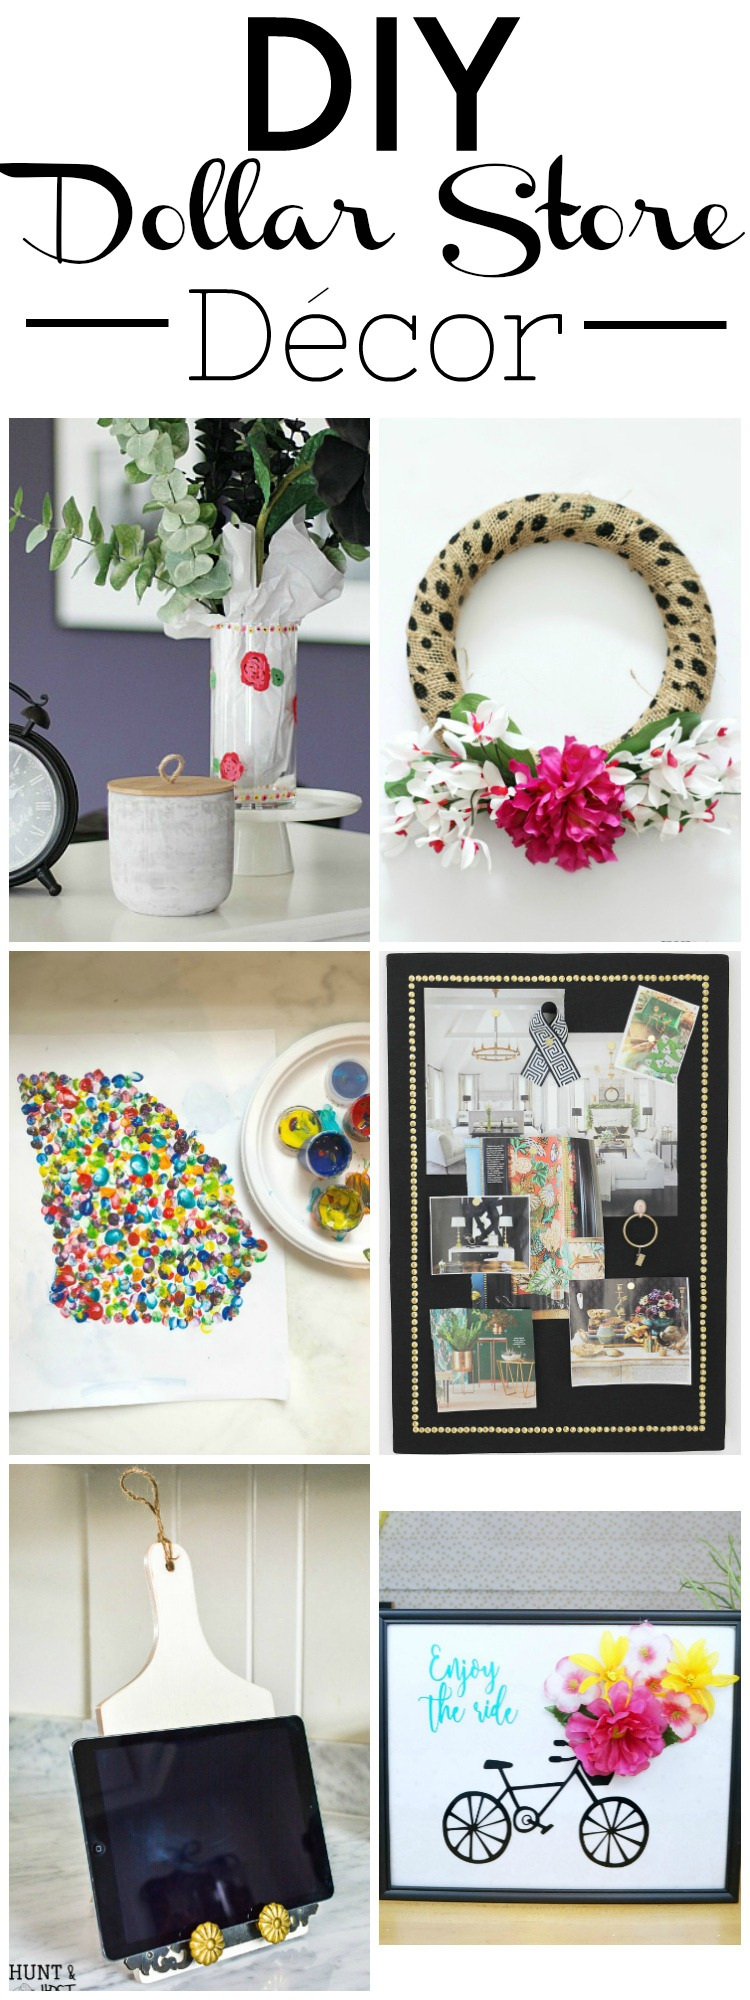 My Dollar Store DIY - 6 DIY Dollar Store Home Decor Projects!